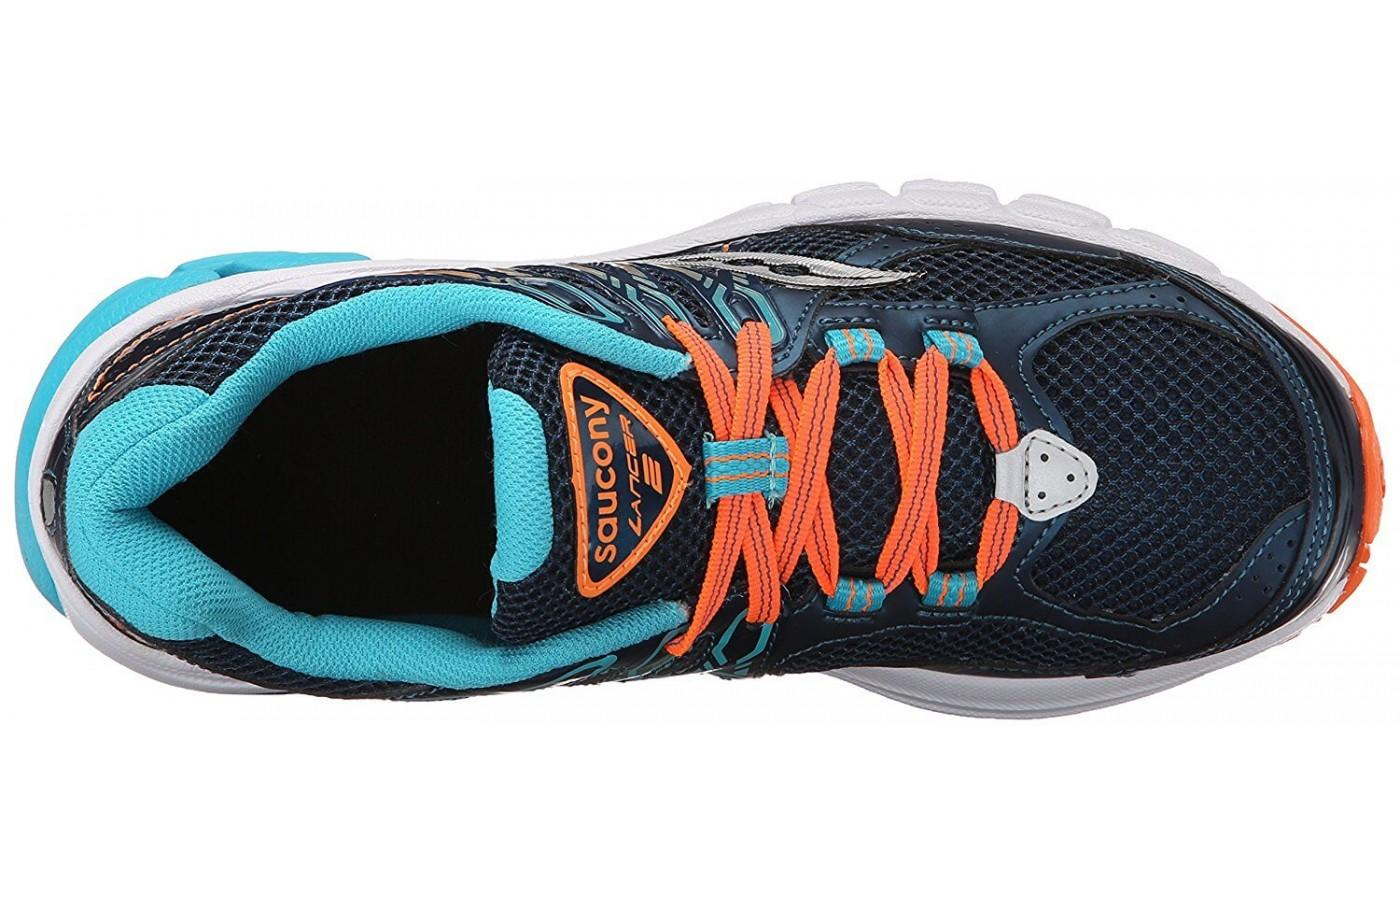 Saucony Lancer 2 features stretchy laces